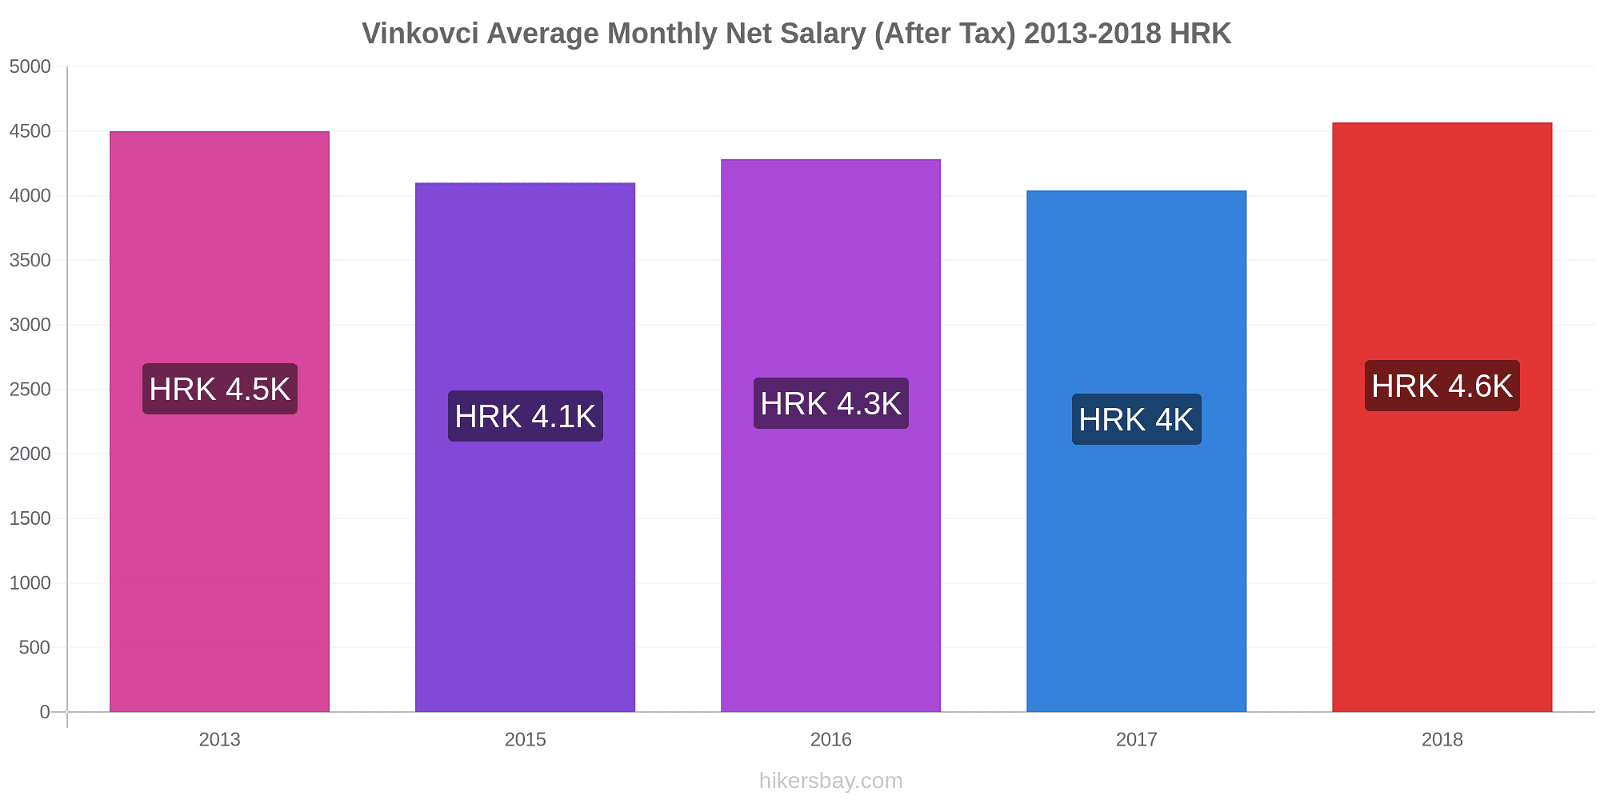 Vinkovci price changes Average Monthly Net Salary (After Tax) hikersbay.com